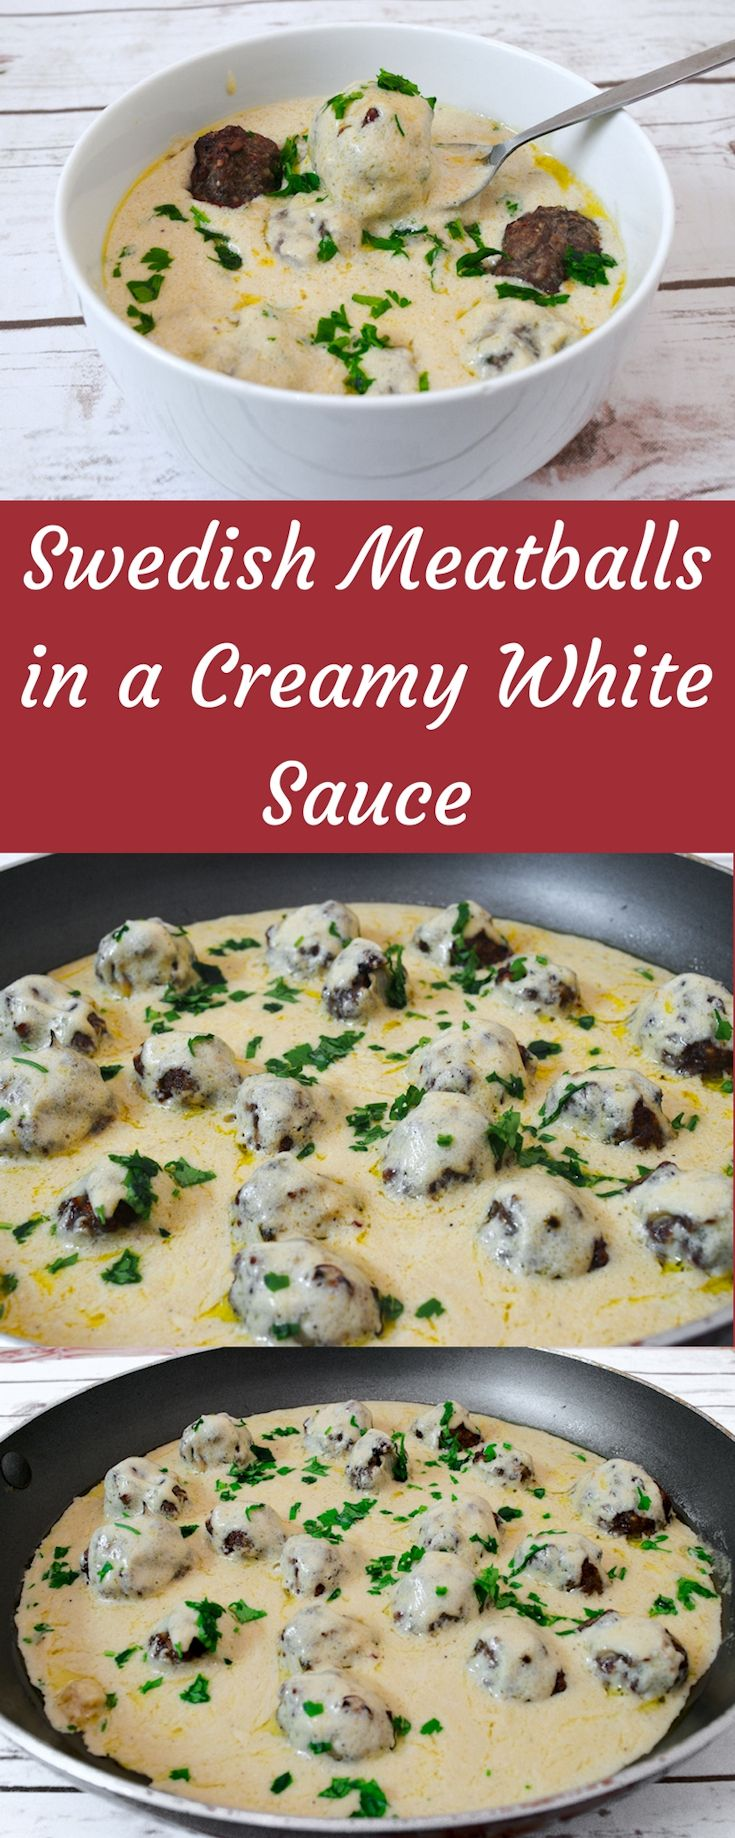 Almknd flour or ground chicharonnes for brradcrumbs Swedish Meatballs in a Creamy White Sauce